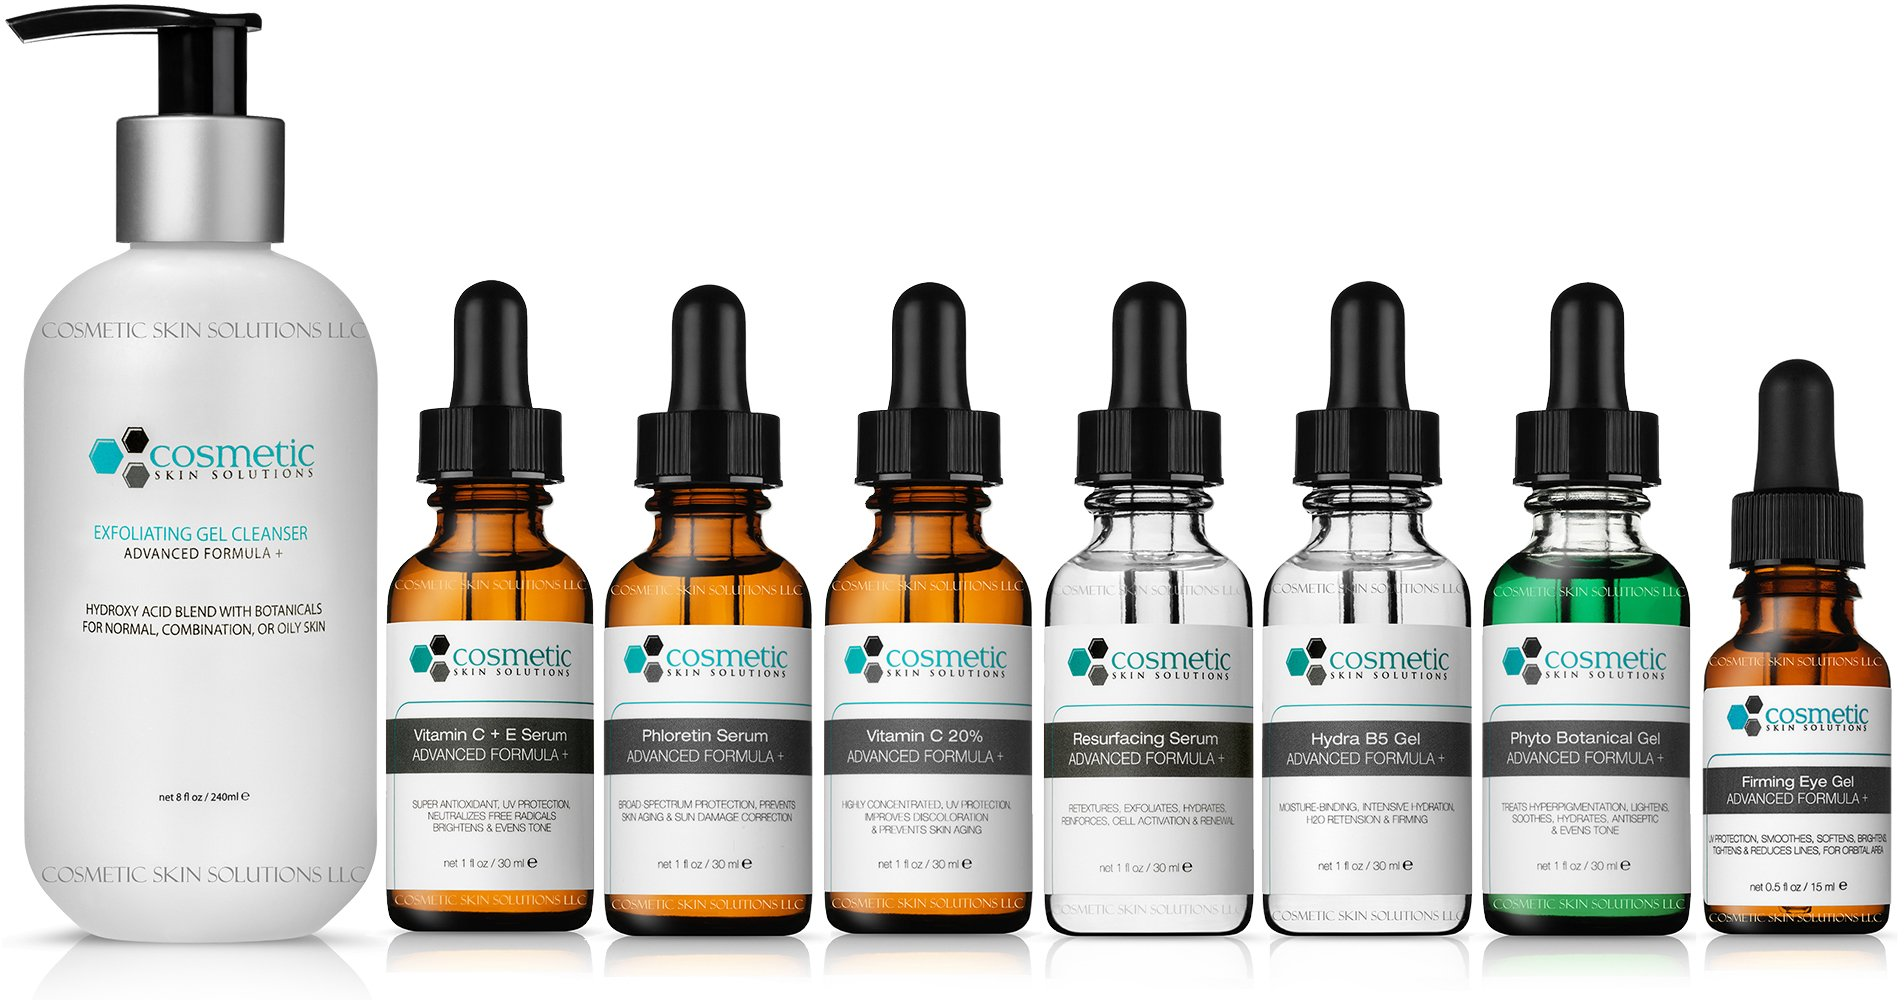 8 Combo Pack Includes EXCLUSIVE SET - Cleanser, Vitamin C+E, Phloretin, C 20%, Resurface, Phyto, B5, Eye, Advanced Formula, ULTIMATE ANTI-AGING ANTIOXIDANTS, 100% Safe & Effective, No Parabens or Oils